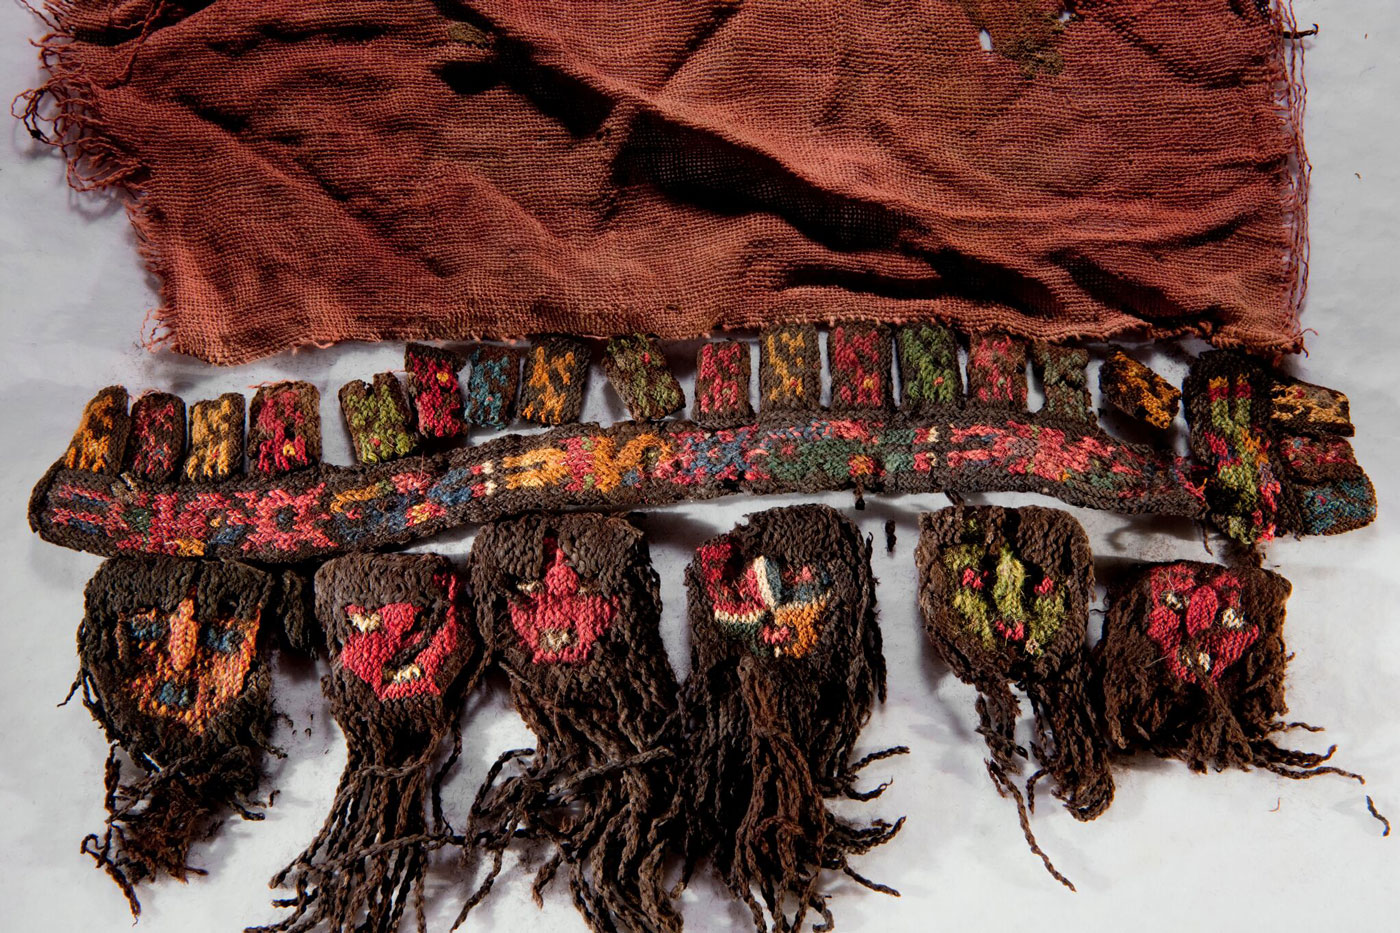 The sacred symbols of the Nasca reverberate through their material culture. Adorning the border of a ceremonial shawl from Cahuachi, long-haired heads mimic real sacrificial heads.